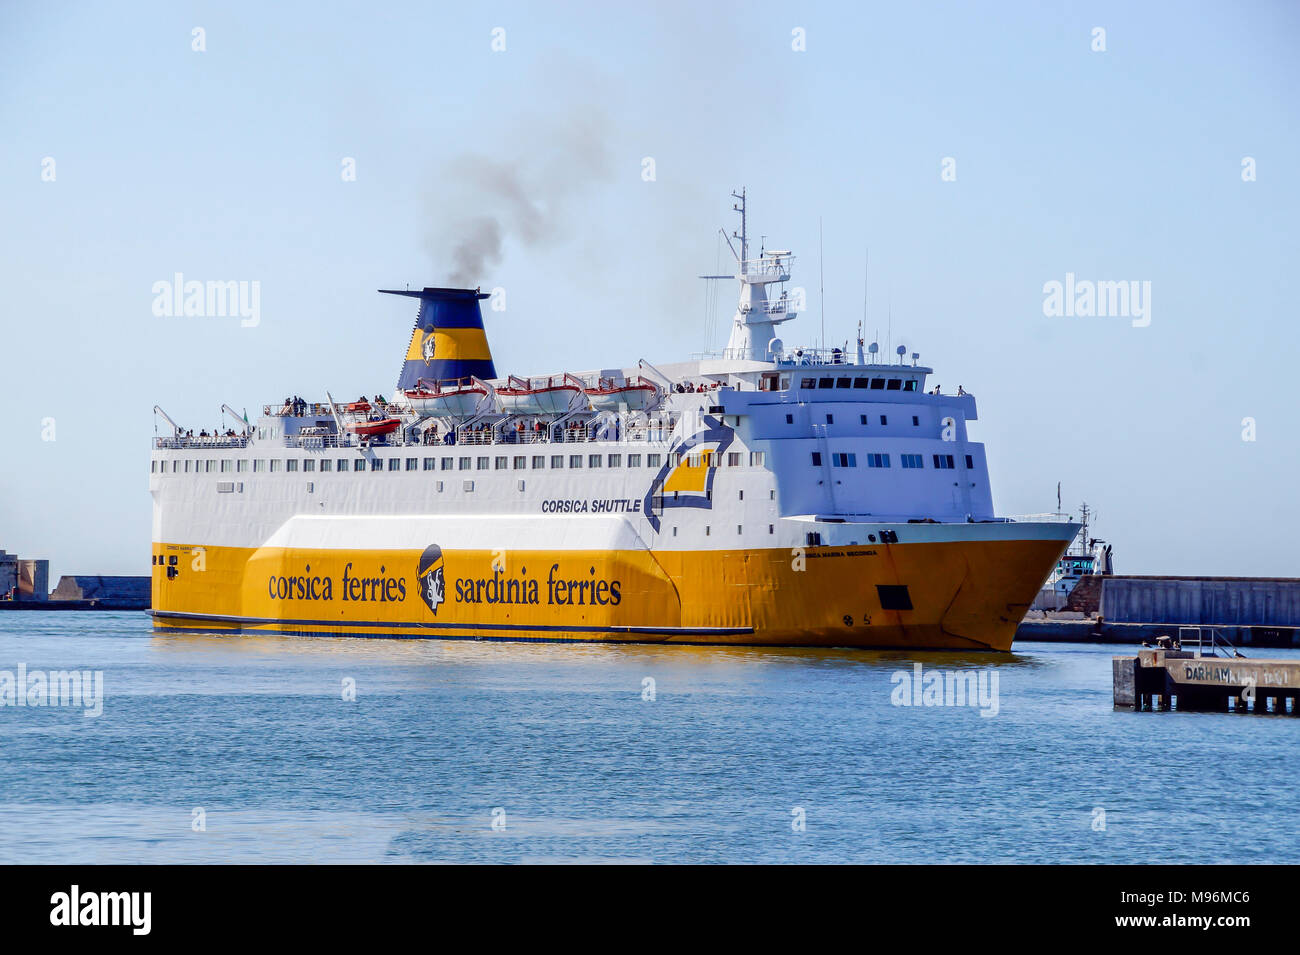 Corsica ferries car and passenger ferry  Corsica Shuttle arriving at Livorno Harbour Livorno Italy Europe - Stock Image